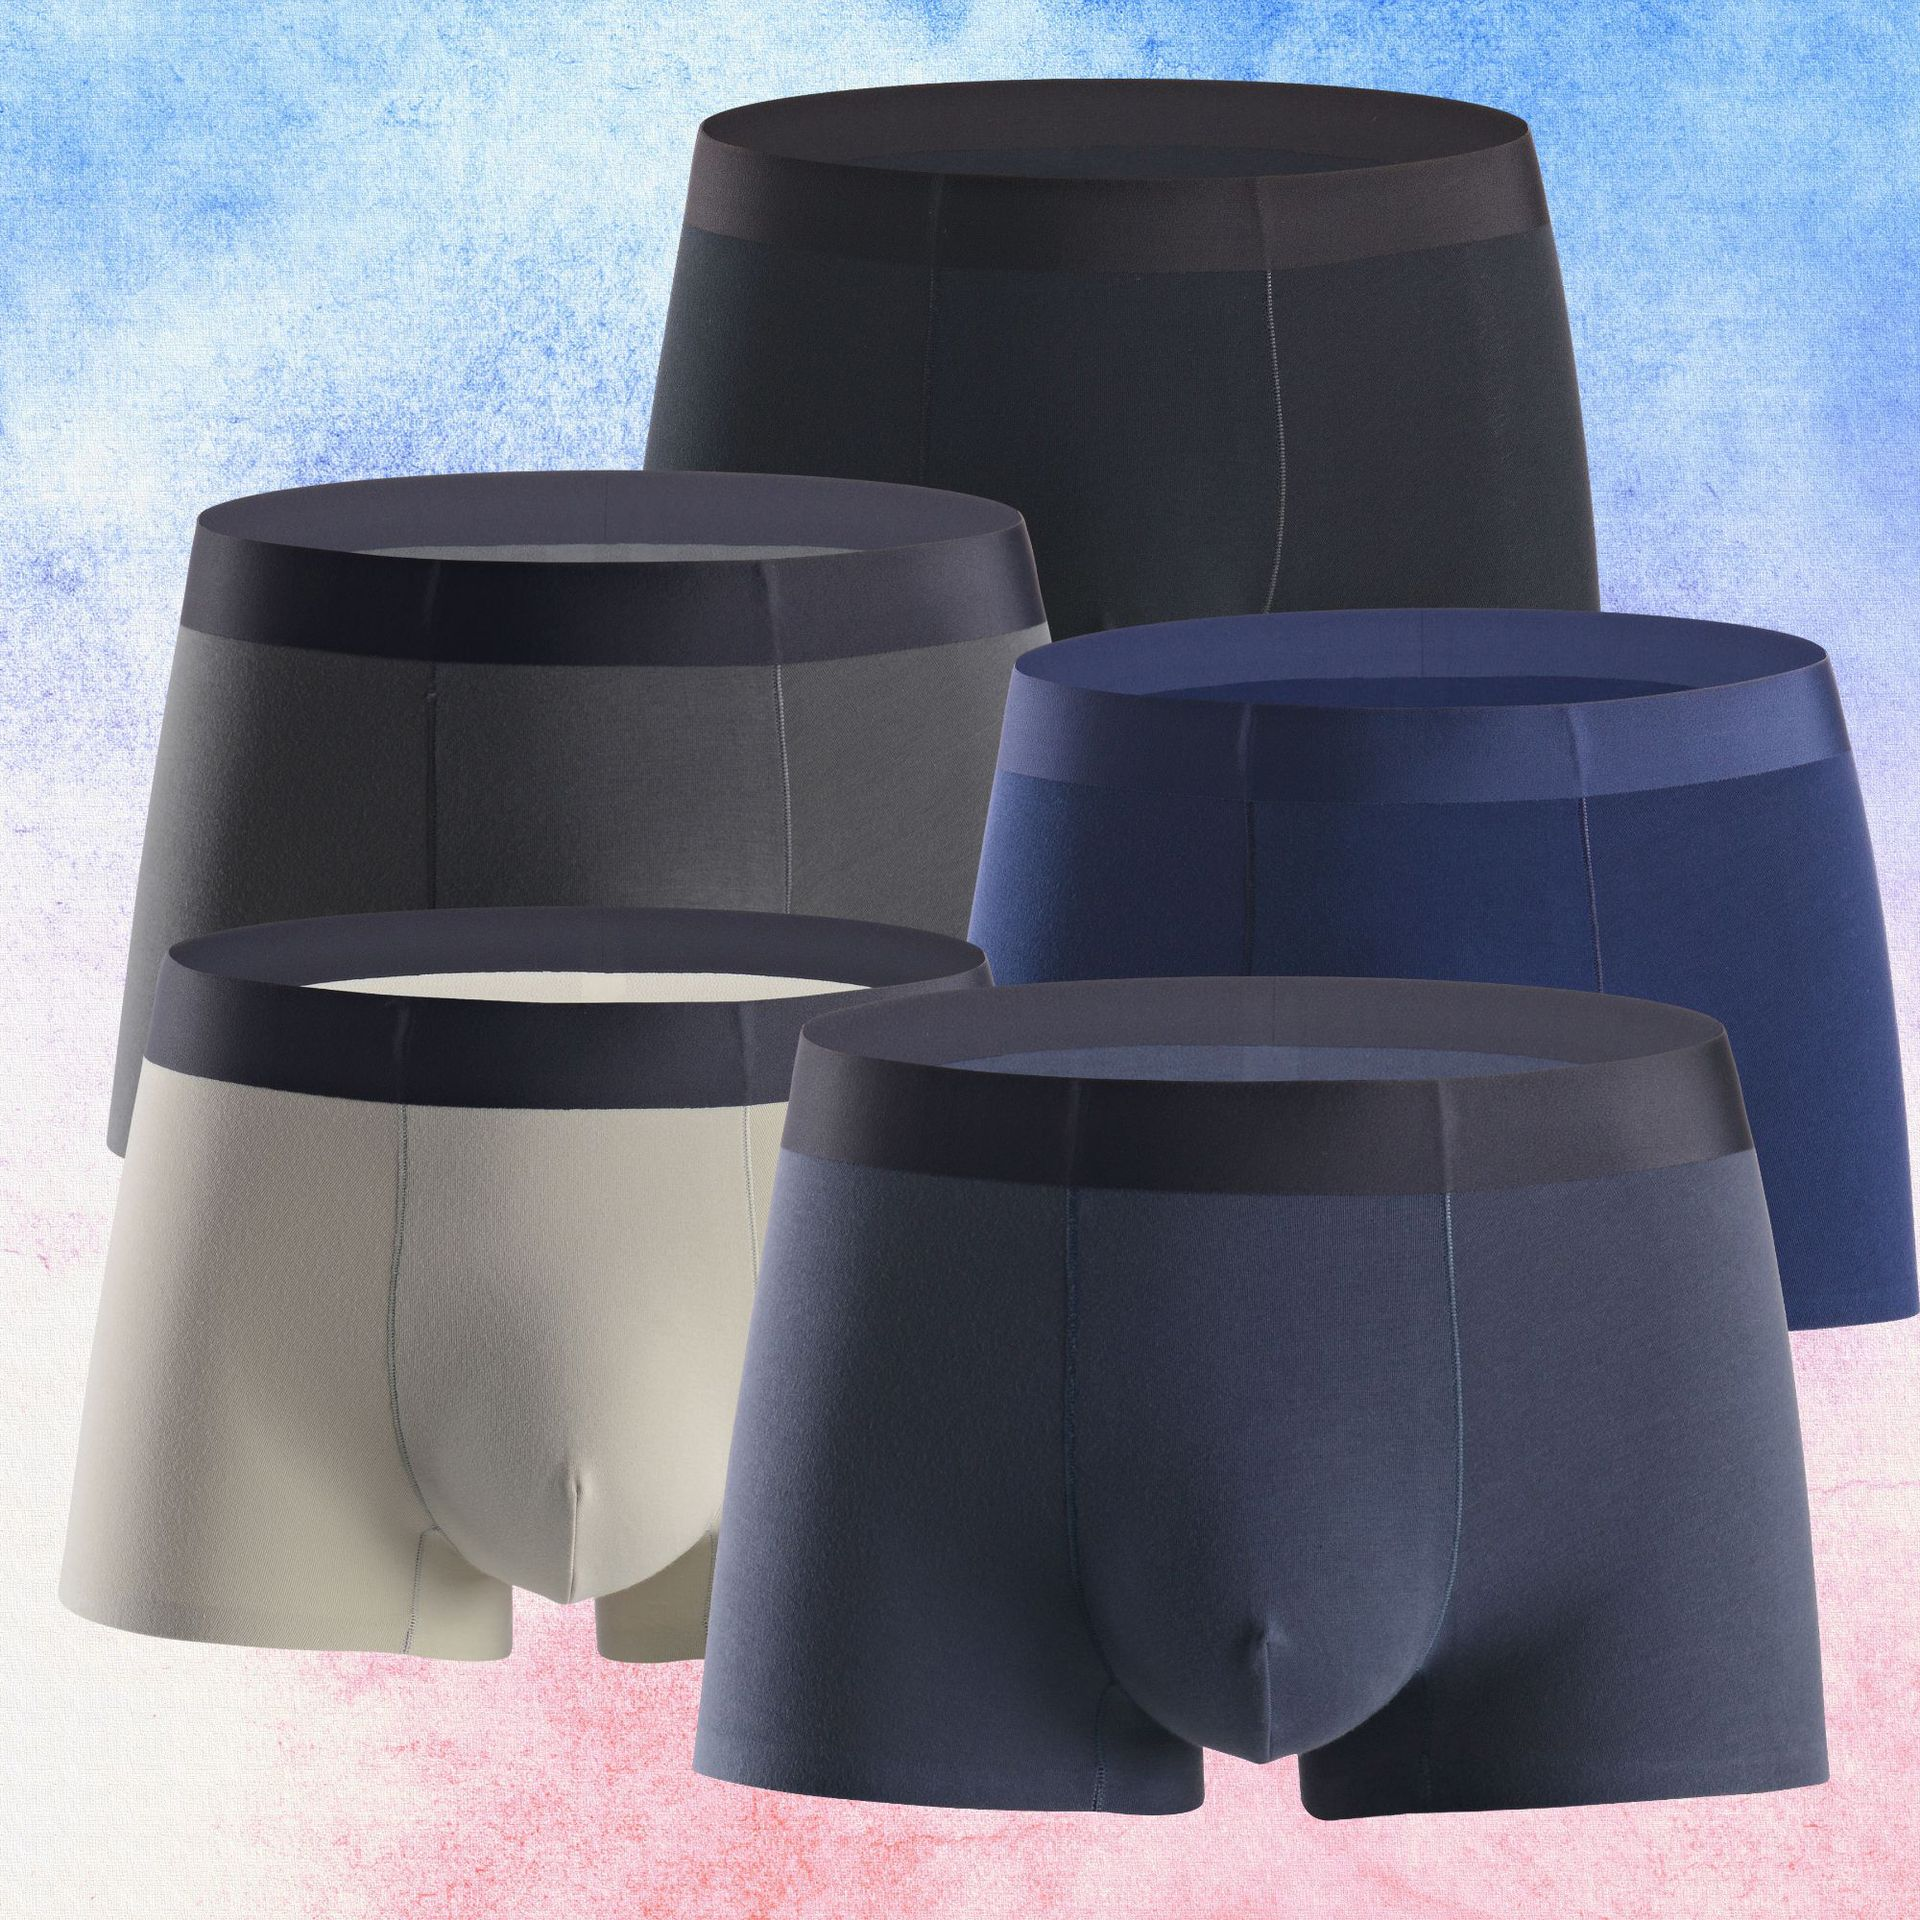 Men's cotton underwear cotton men's boxers solid color comfortable men's underwear